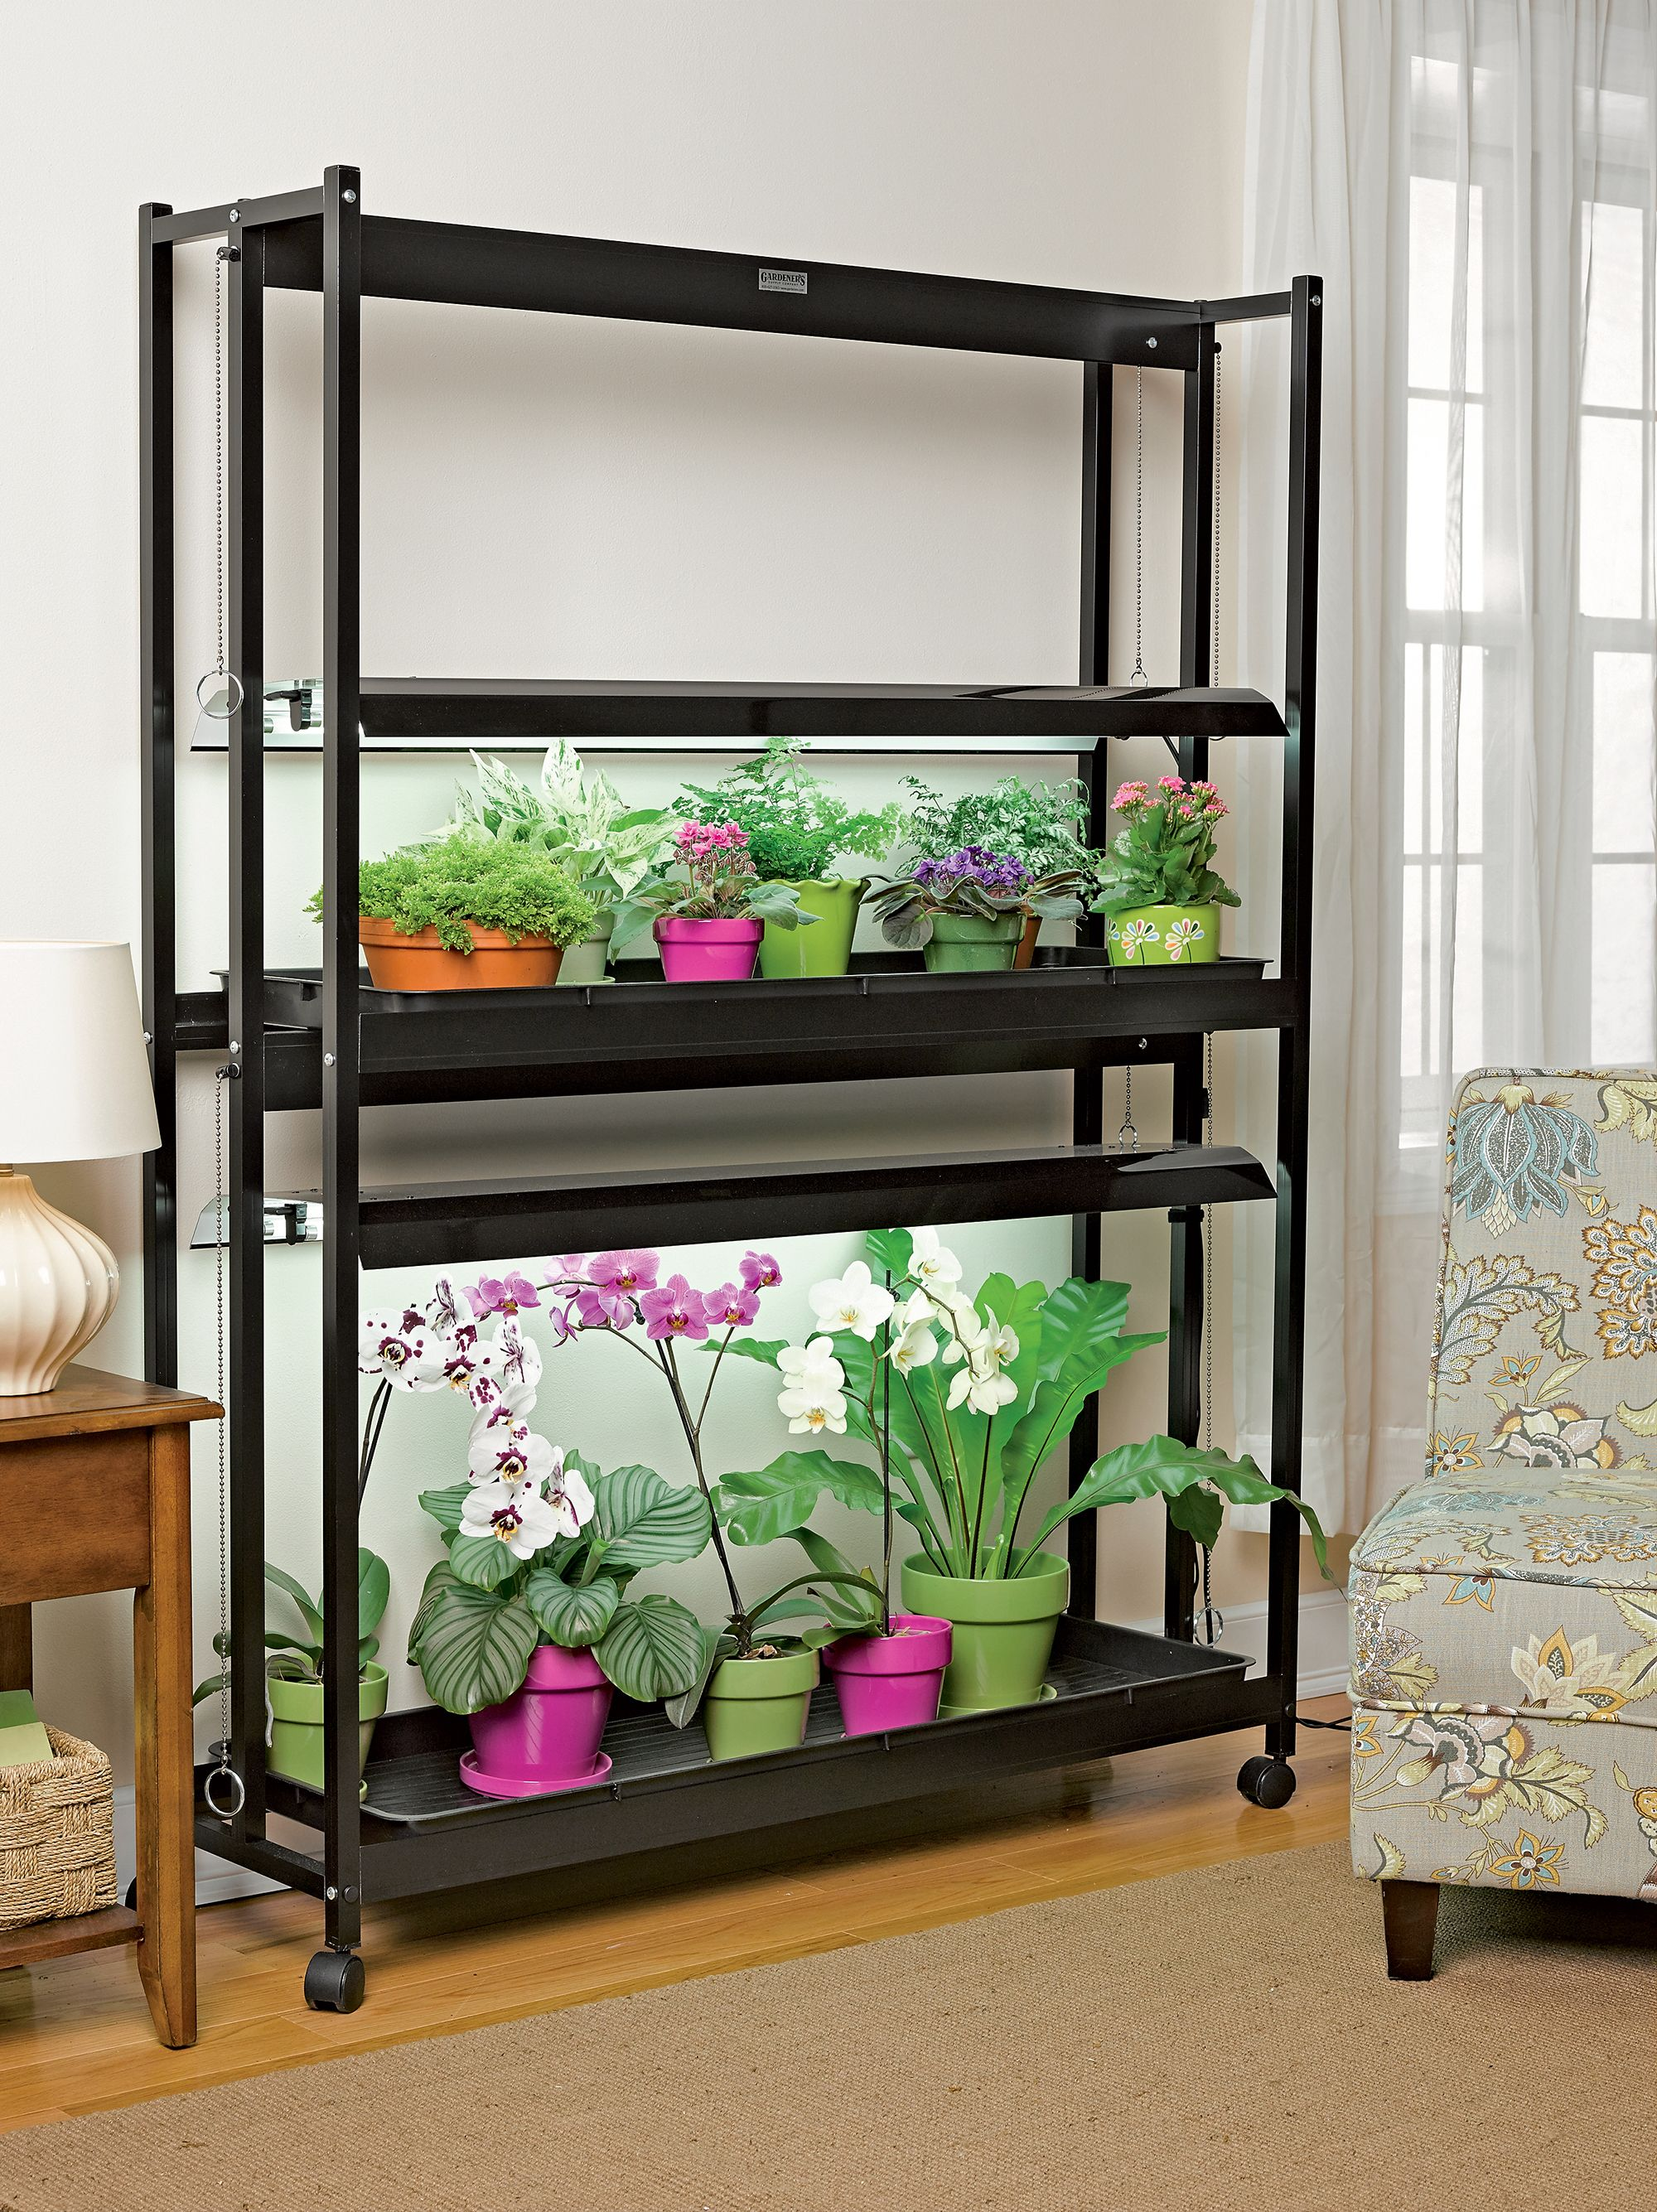 Growing Orchids Indoors High Intensity